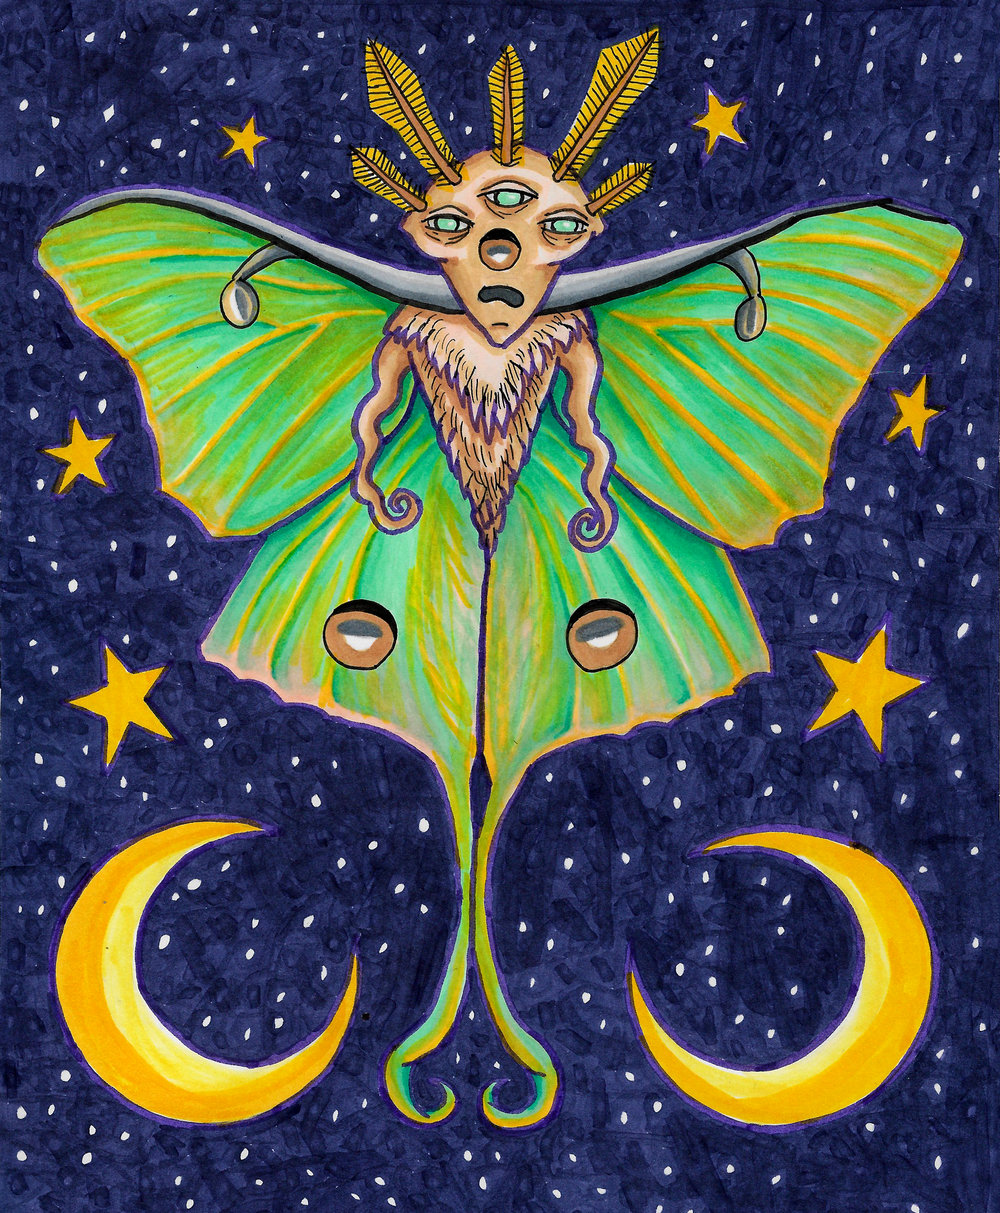 """Luna Moth""   Ink and Copic Marker on 8x10"" Bristol board Exhibited in the Conception Gallery Exhibition in Chicago, IL during June 2017. Original piece has been  sold."